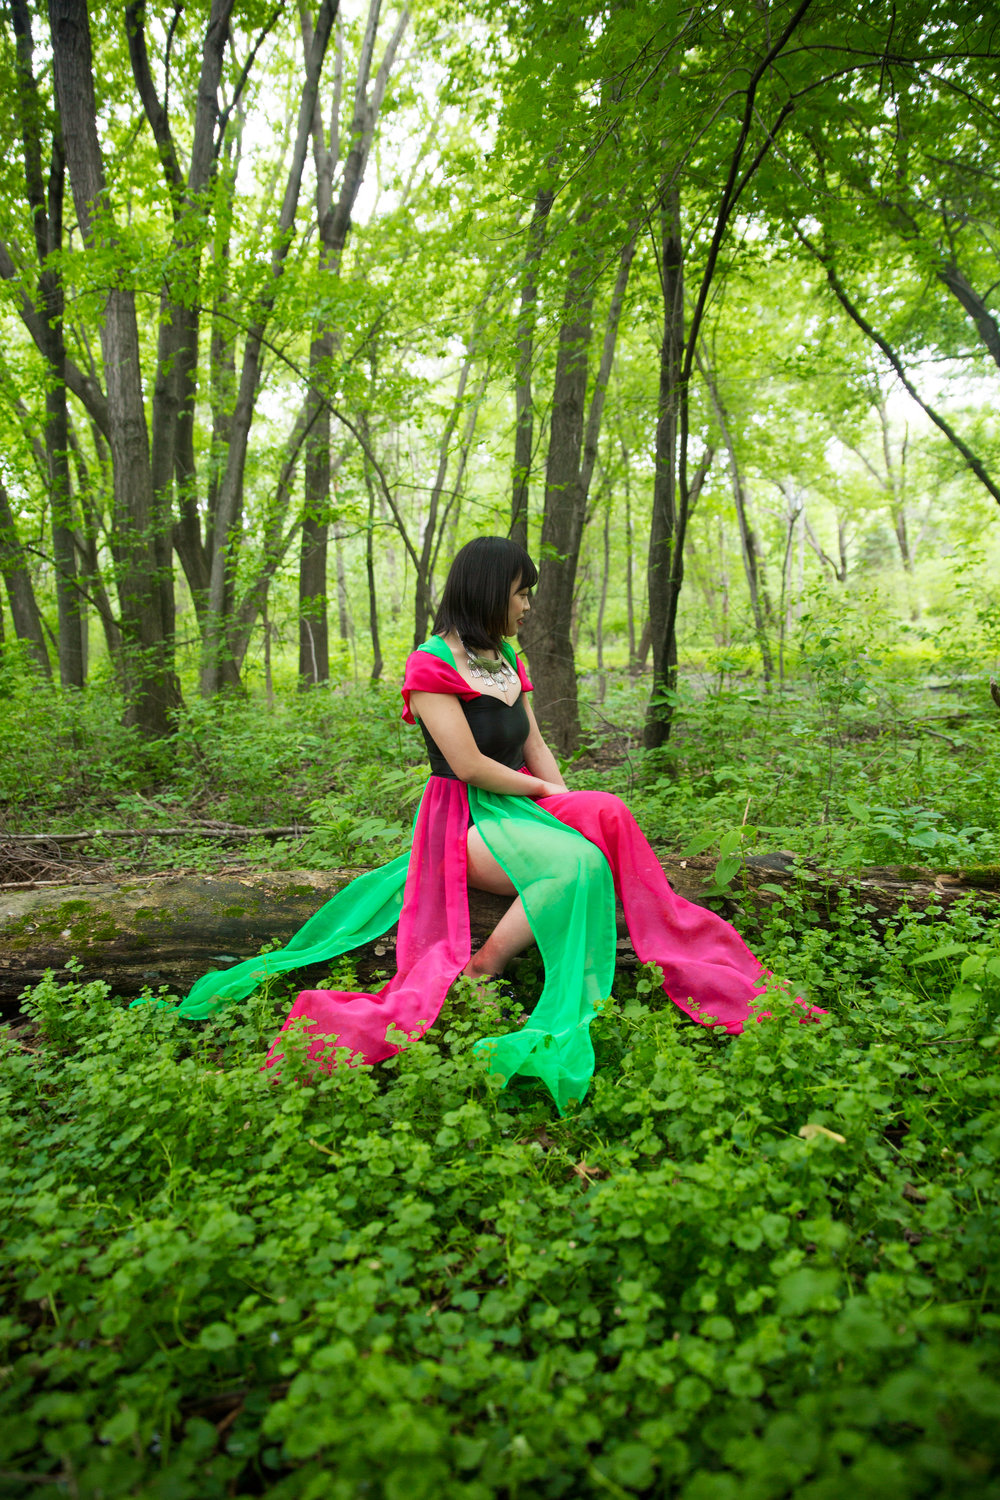 Model: Mihoko Xiong Dress: Kachia Lee Designs Second Shooter: Touchaingkong Yang Assistant: Yer Vang Location: Sister's back yard Jewelry from Hmong ABC